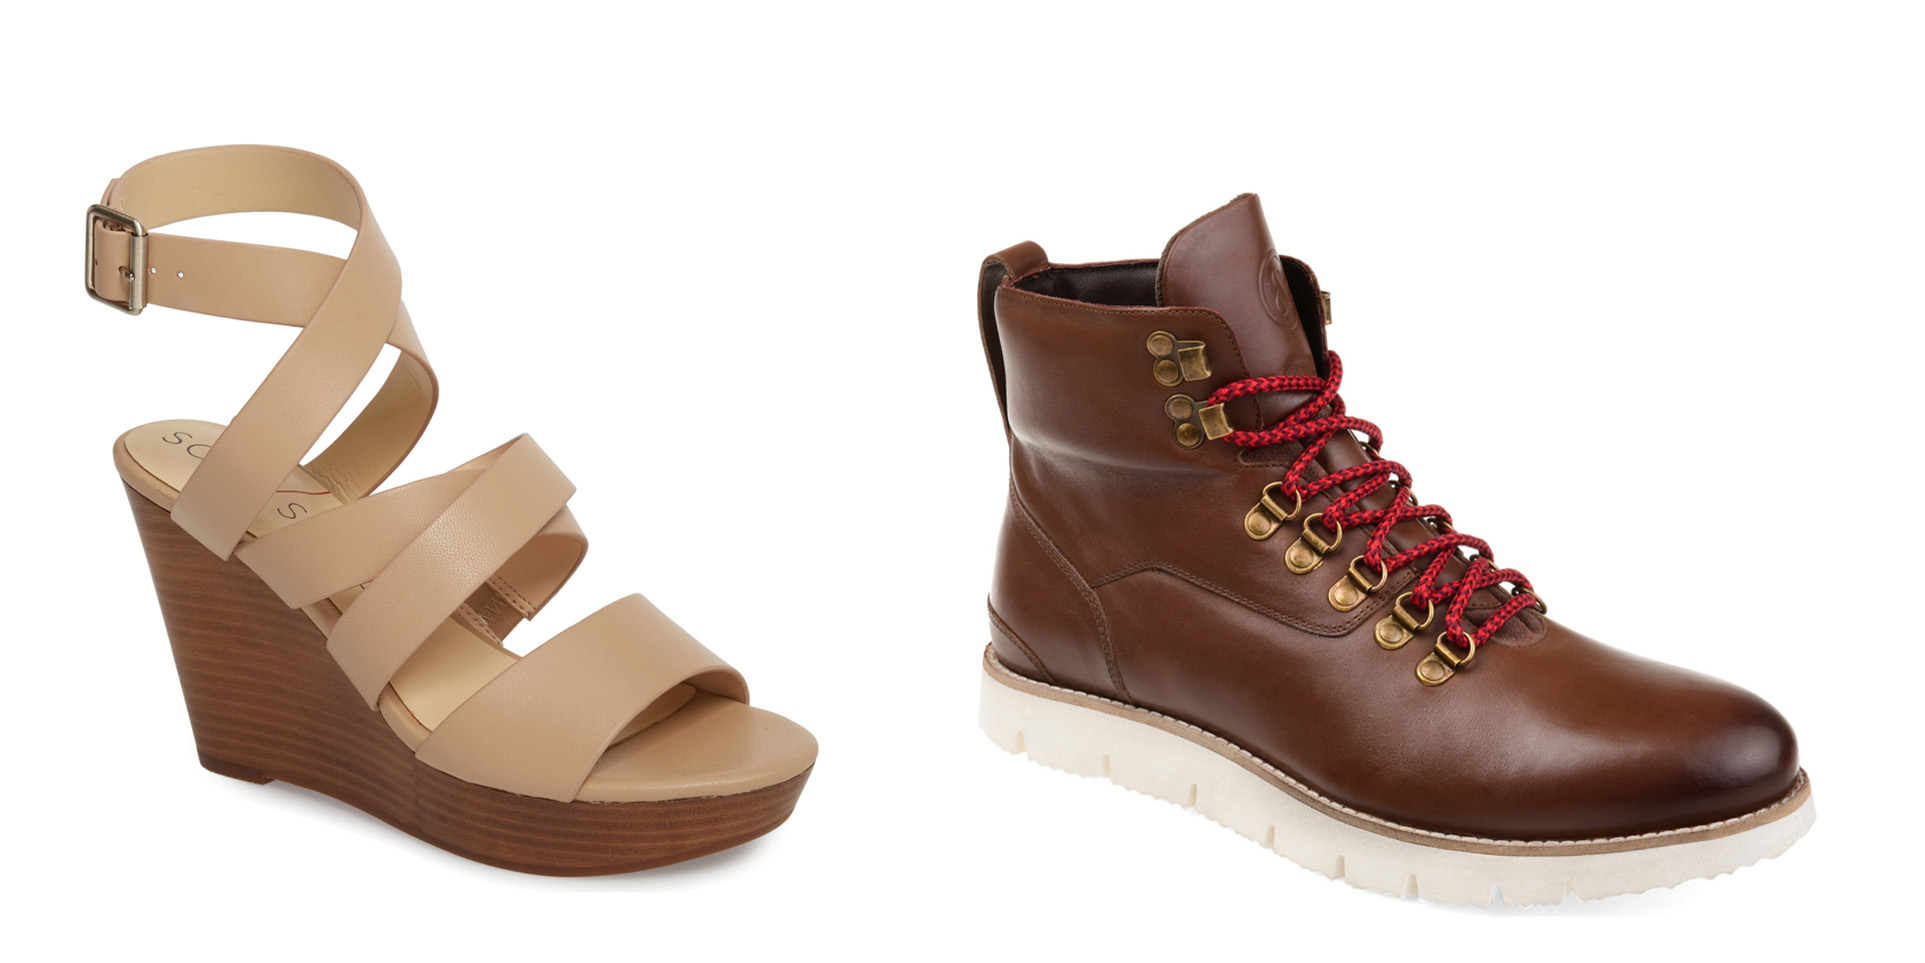 Nordstrom's Shoe Flash Sale offers up to 60% off ECCO, Tory Burch, Madewell & more